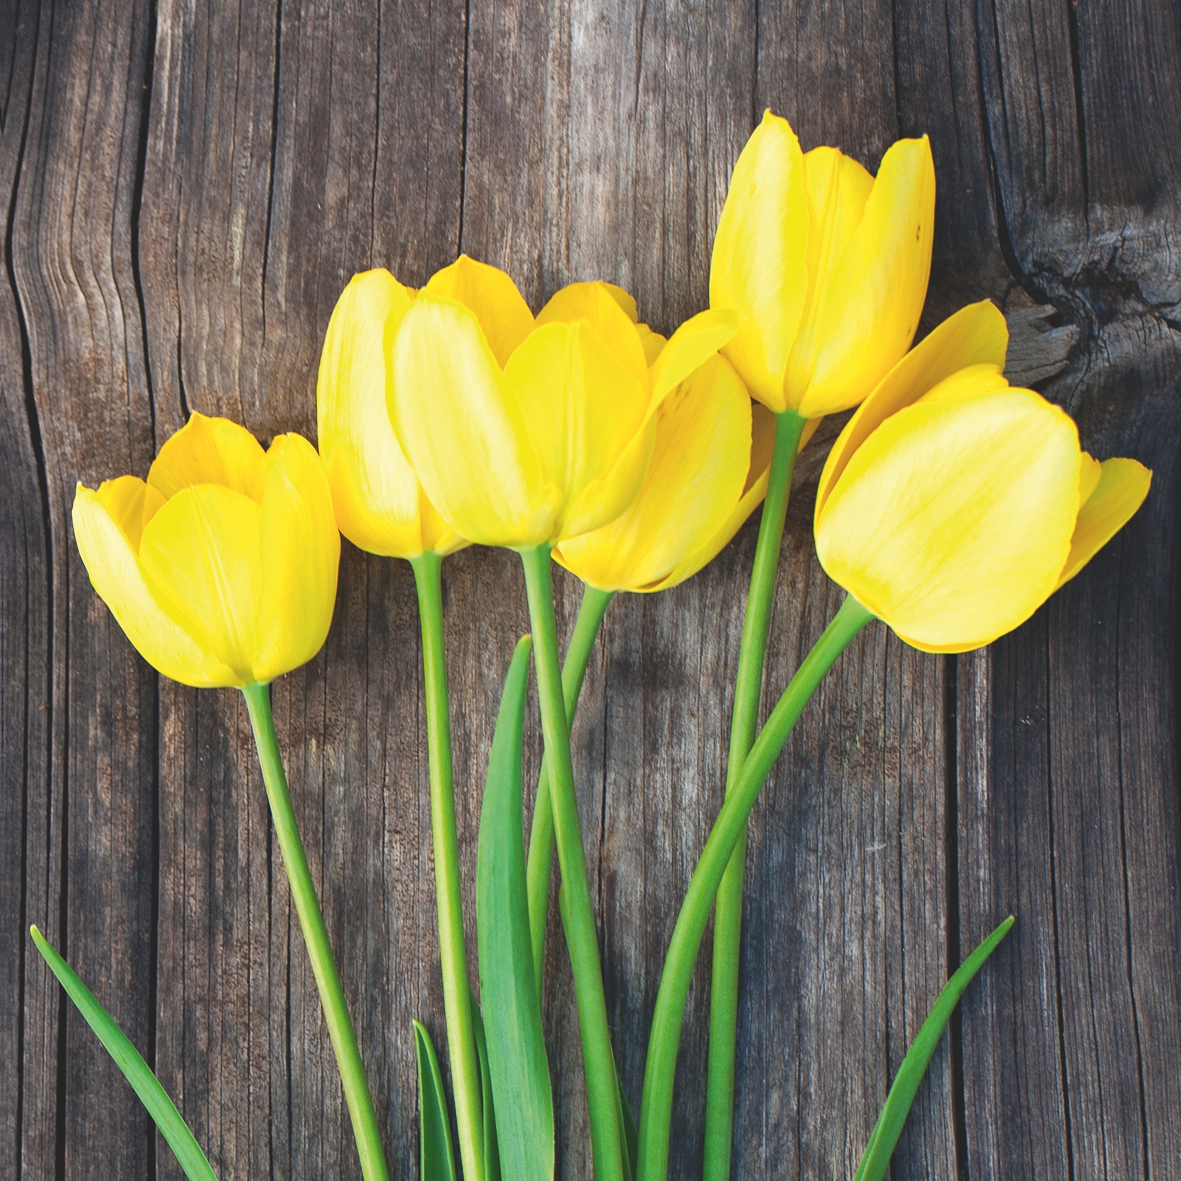 Servietten nach Motiven,  Blumen - Tulpen,  Everyday,  lunchservietten,  Tulpen